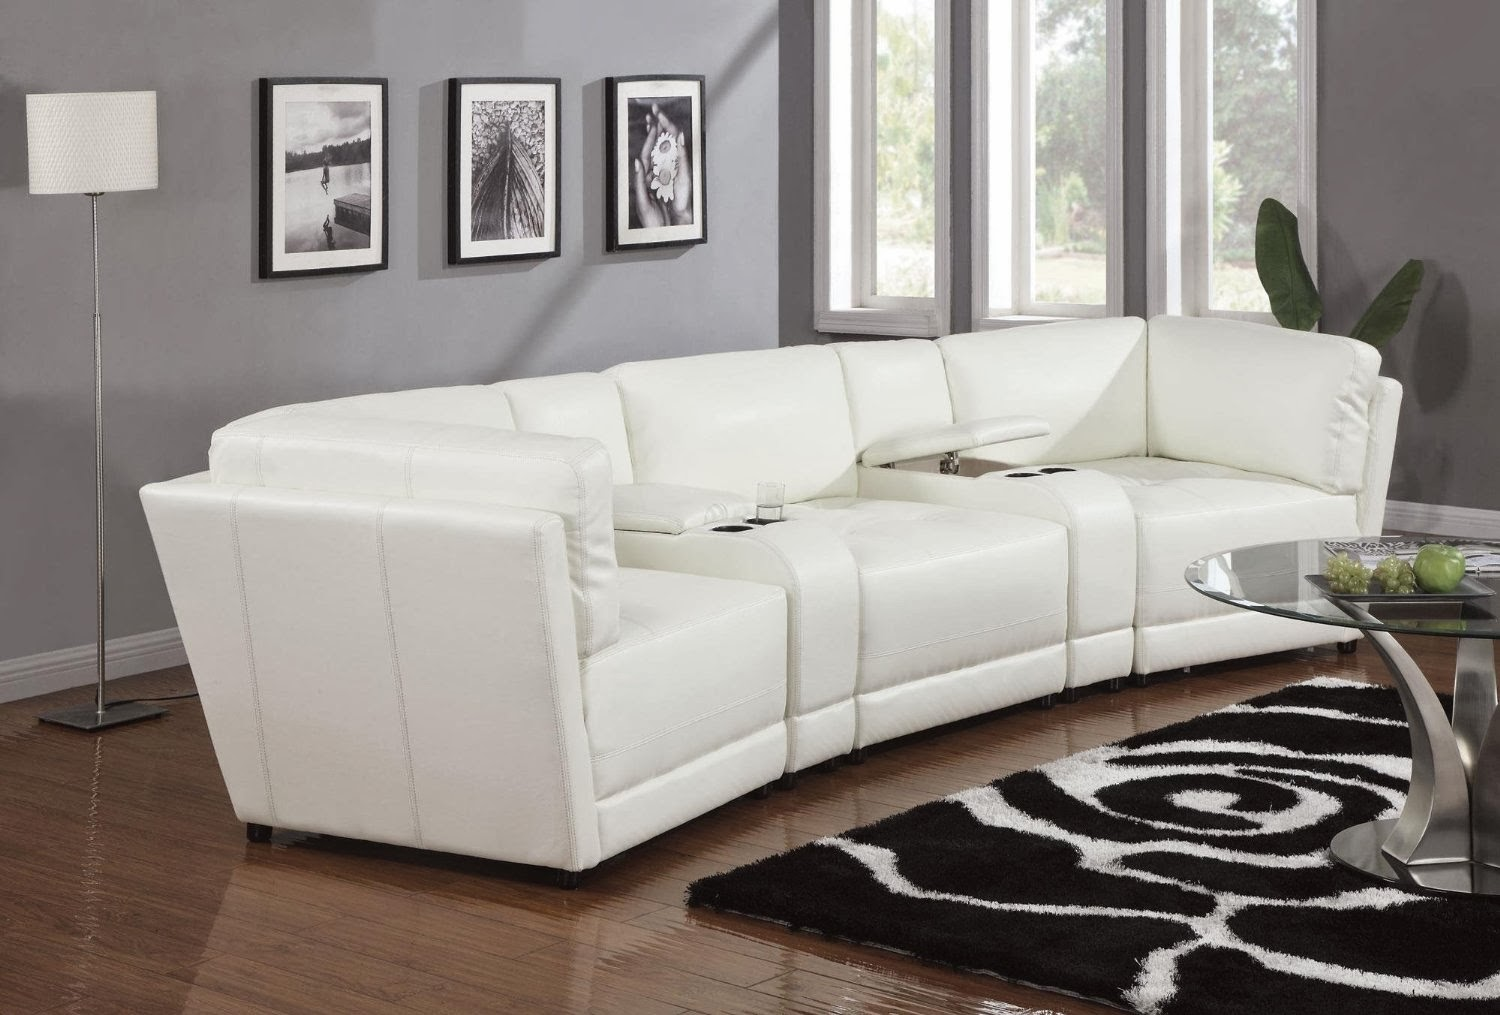 Small Sectional Sofas Reviews Small Curved Sectional Sofa